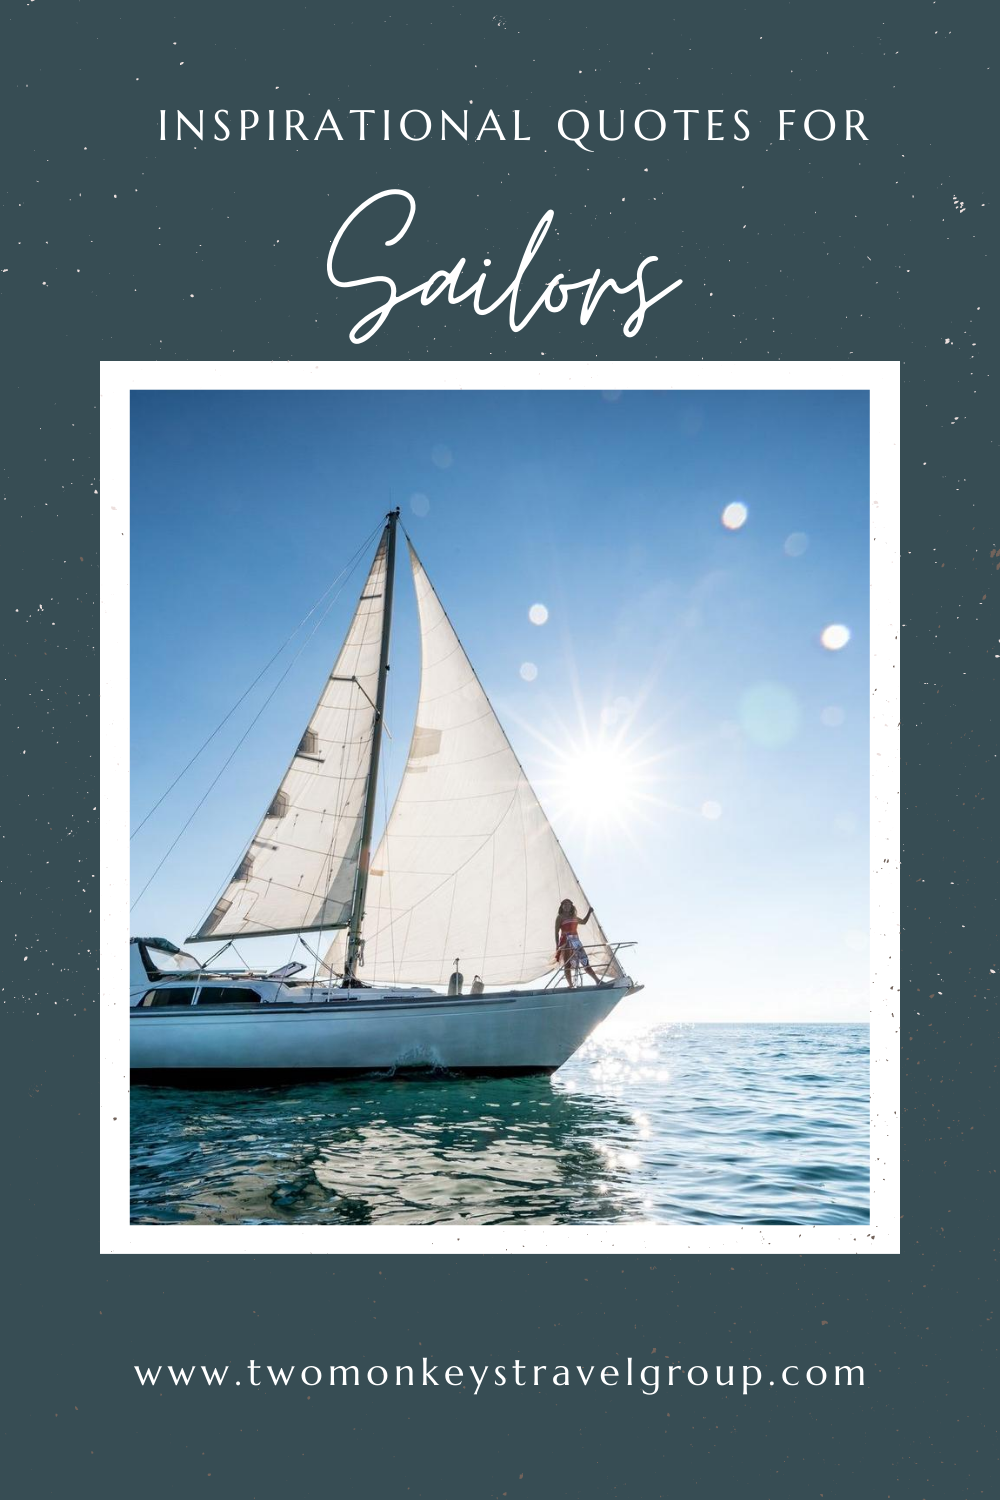 Sailor Sayings and Sailing Quotes Inspirational Quotes for Sailors